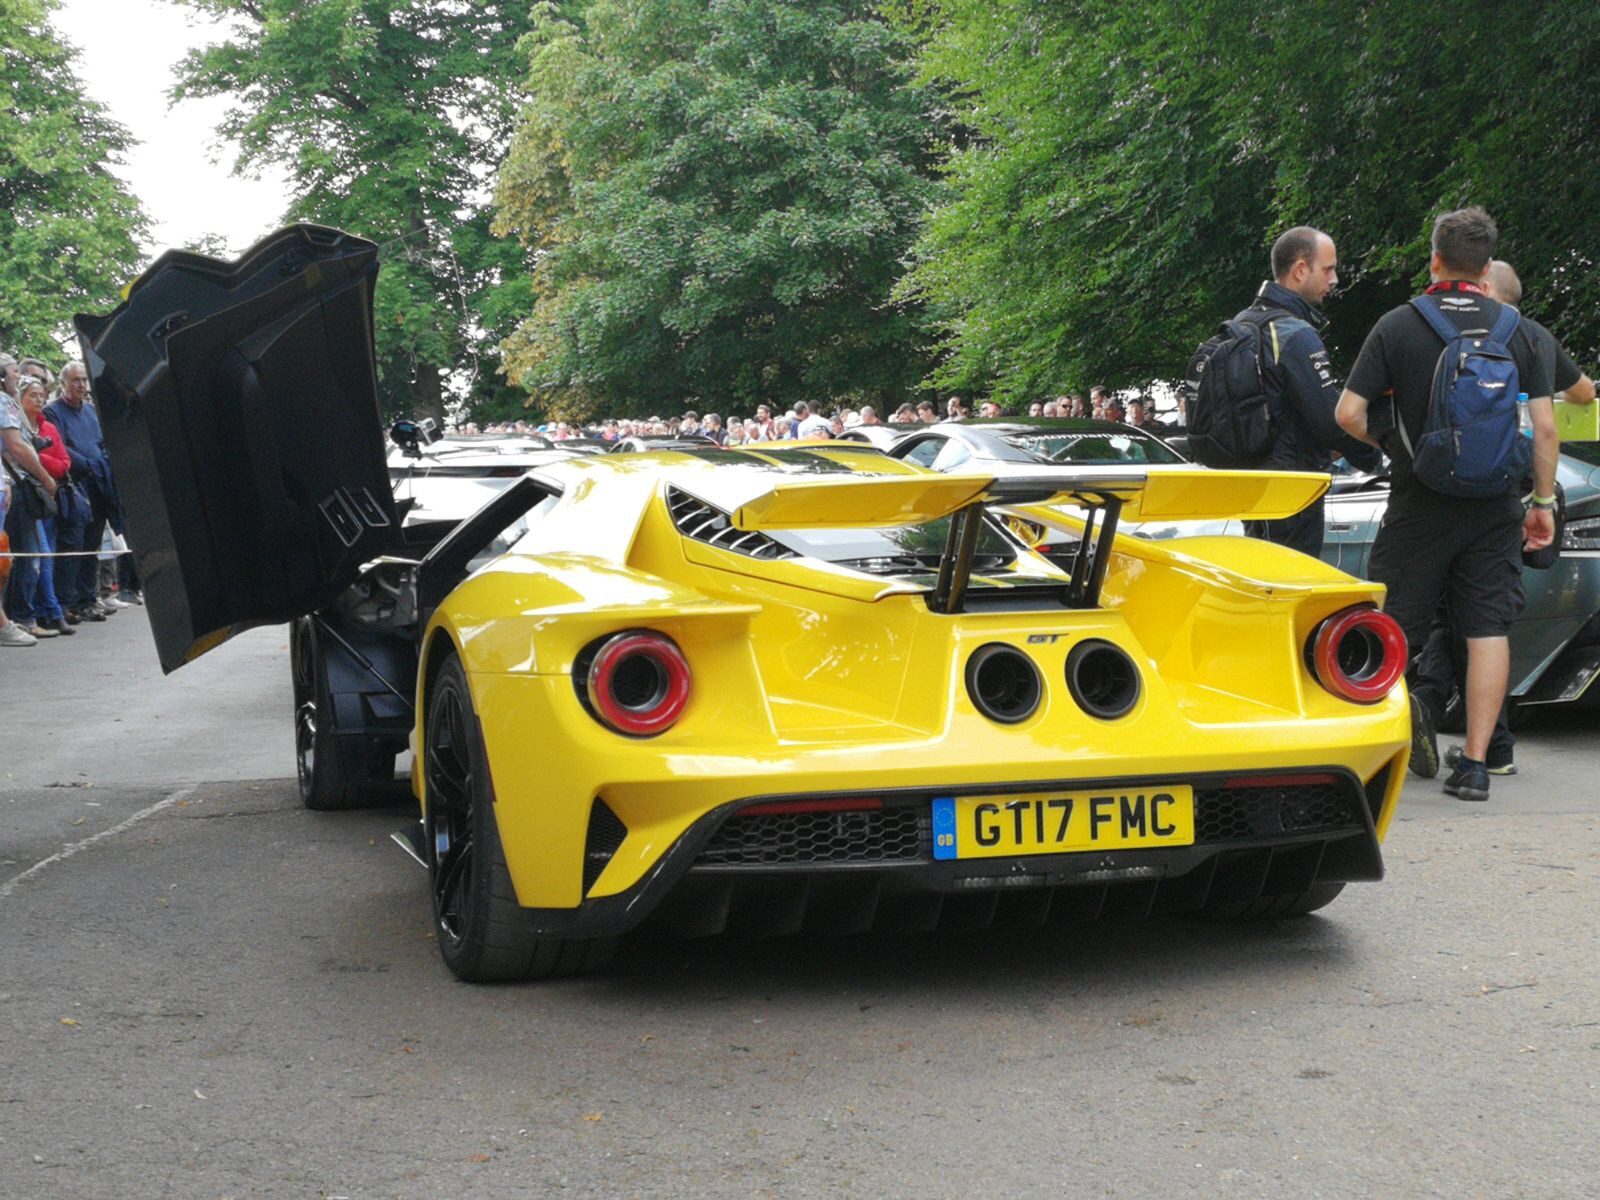 Ford GT and Mustang GT4 At The 2017 Goodwood Festival Of Speed IMG 4512